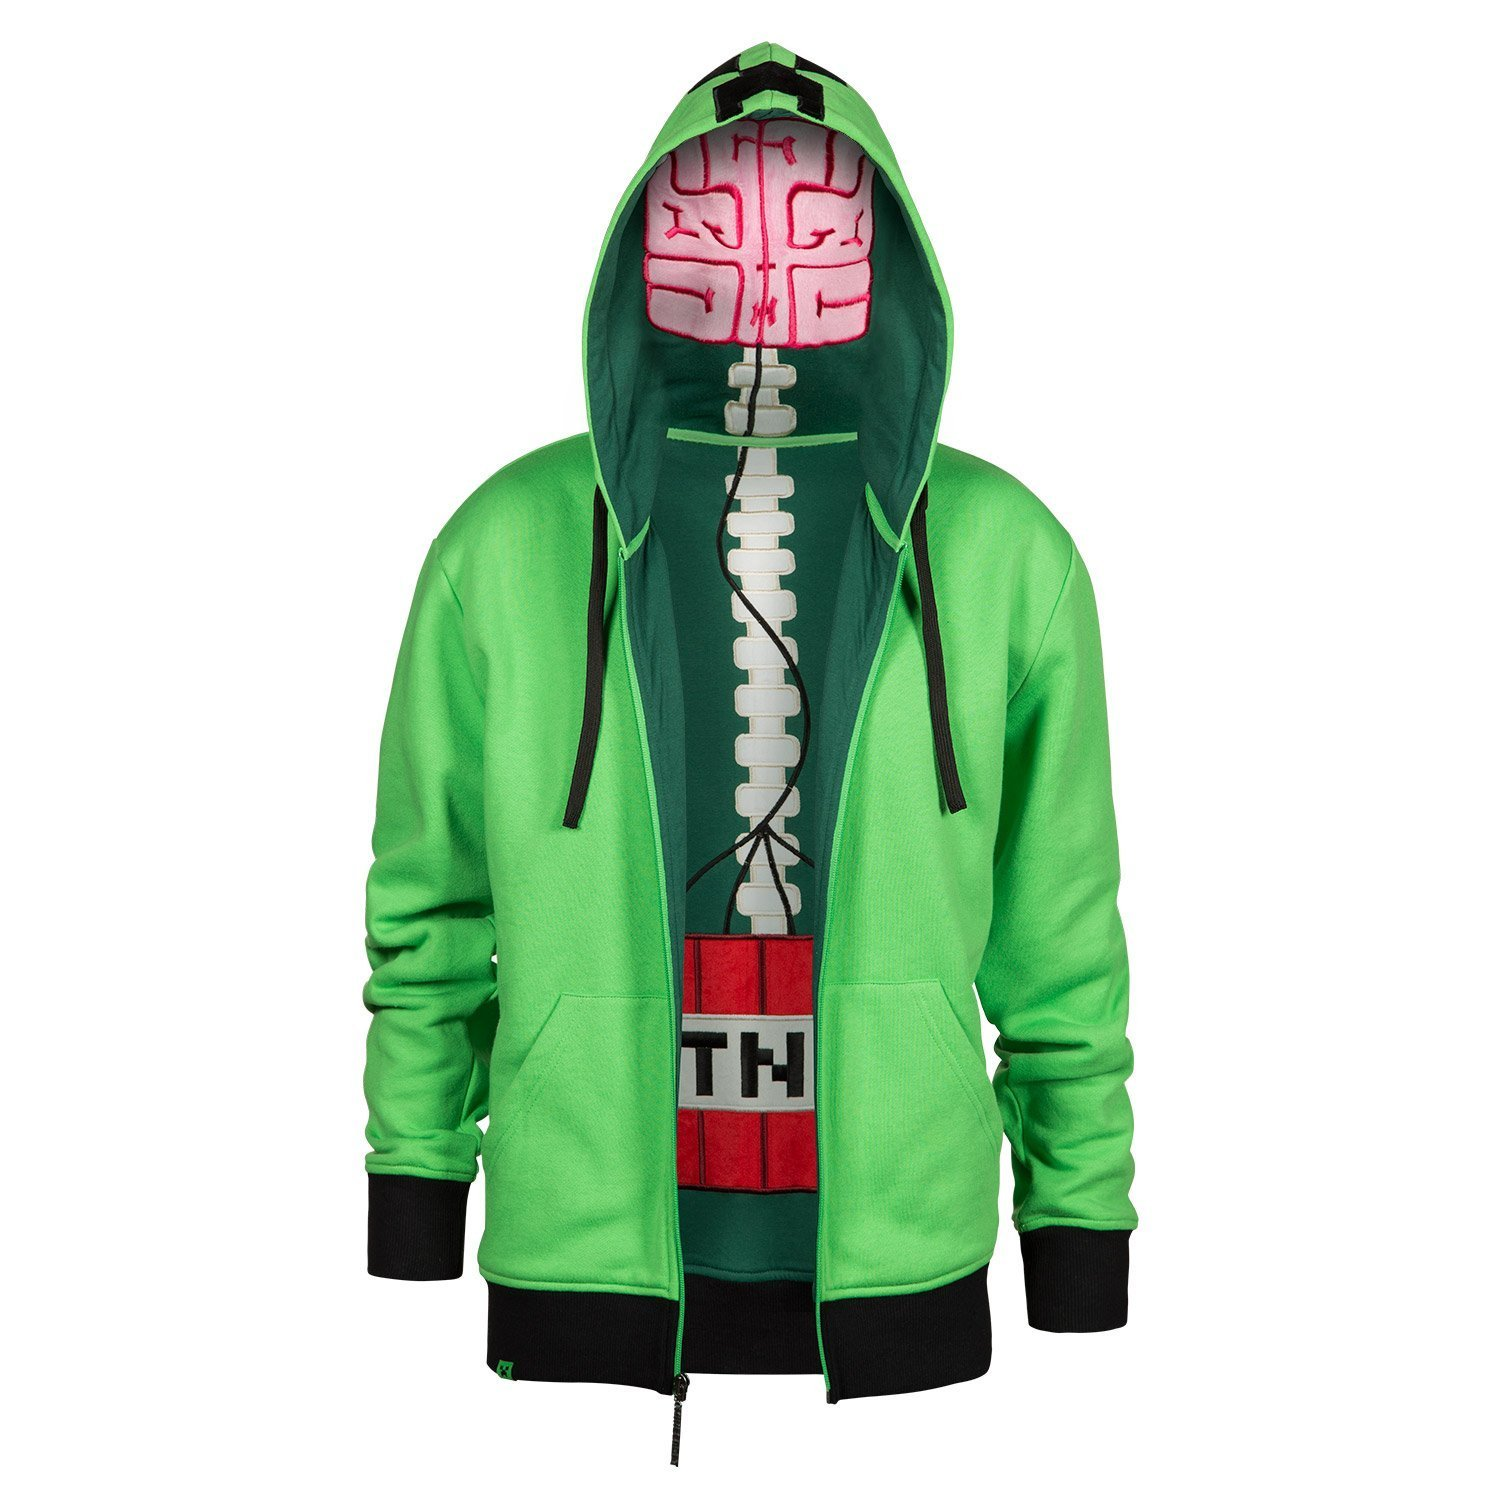 JINX Minecraft Men's Creeper Anatomy Premium Zip-up Hoodie MJMC-05037ZP-GN